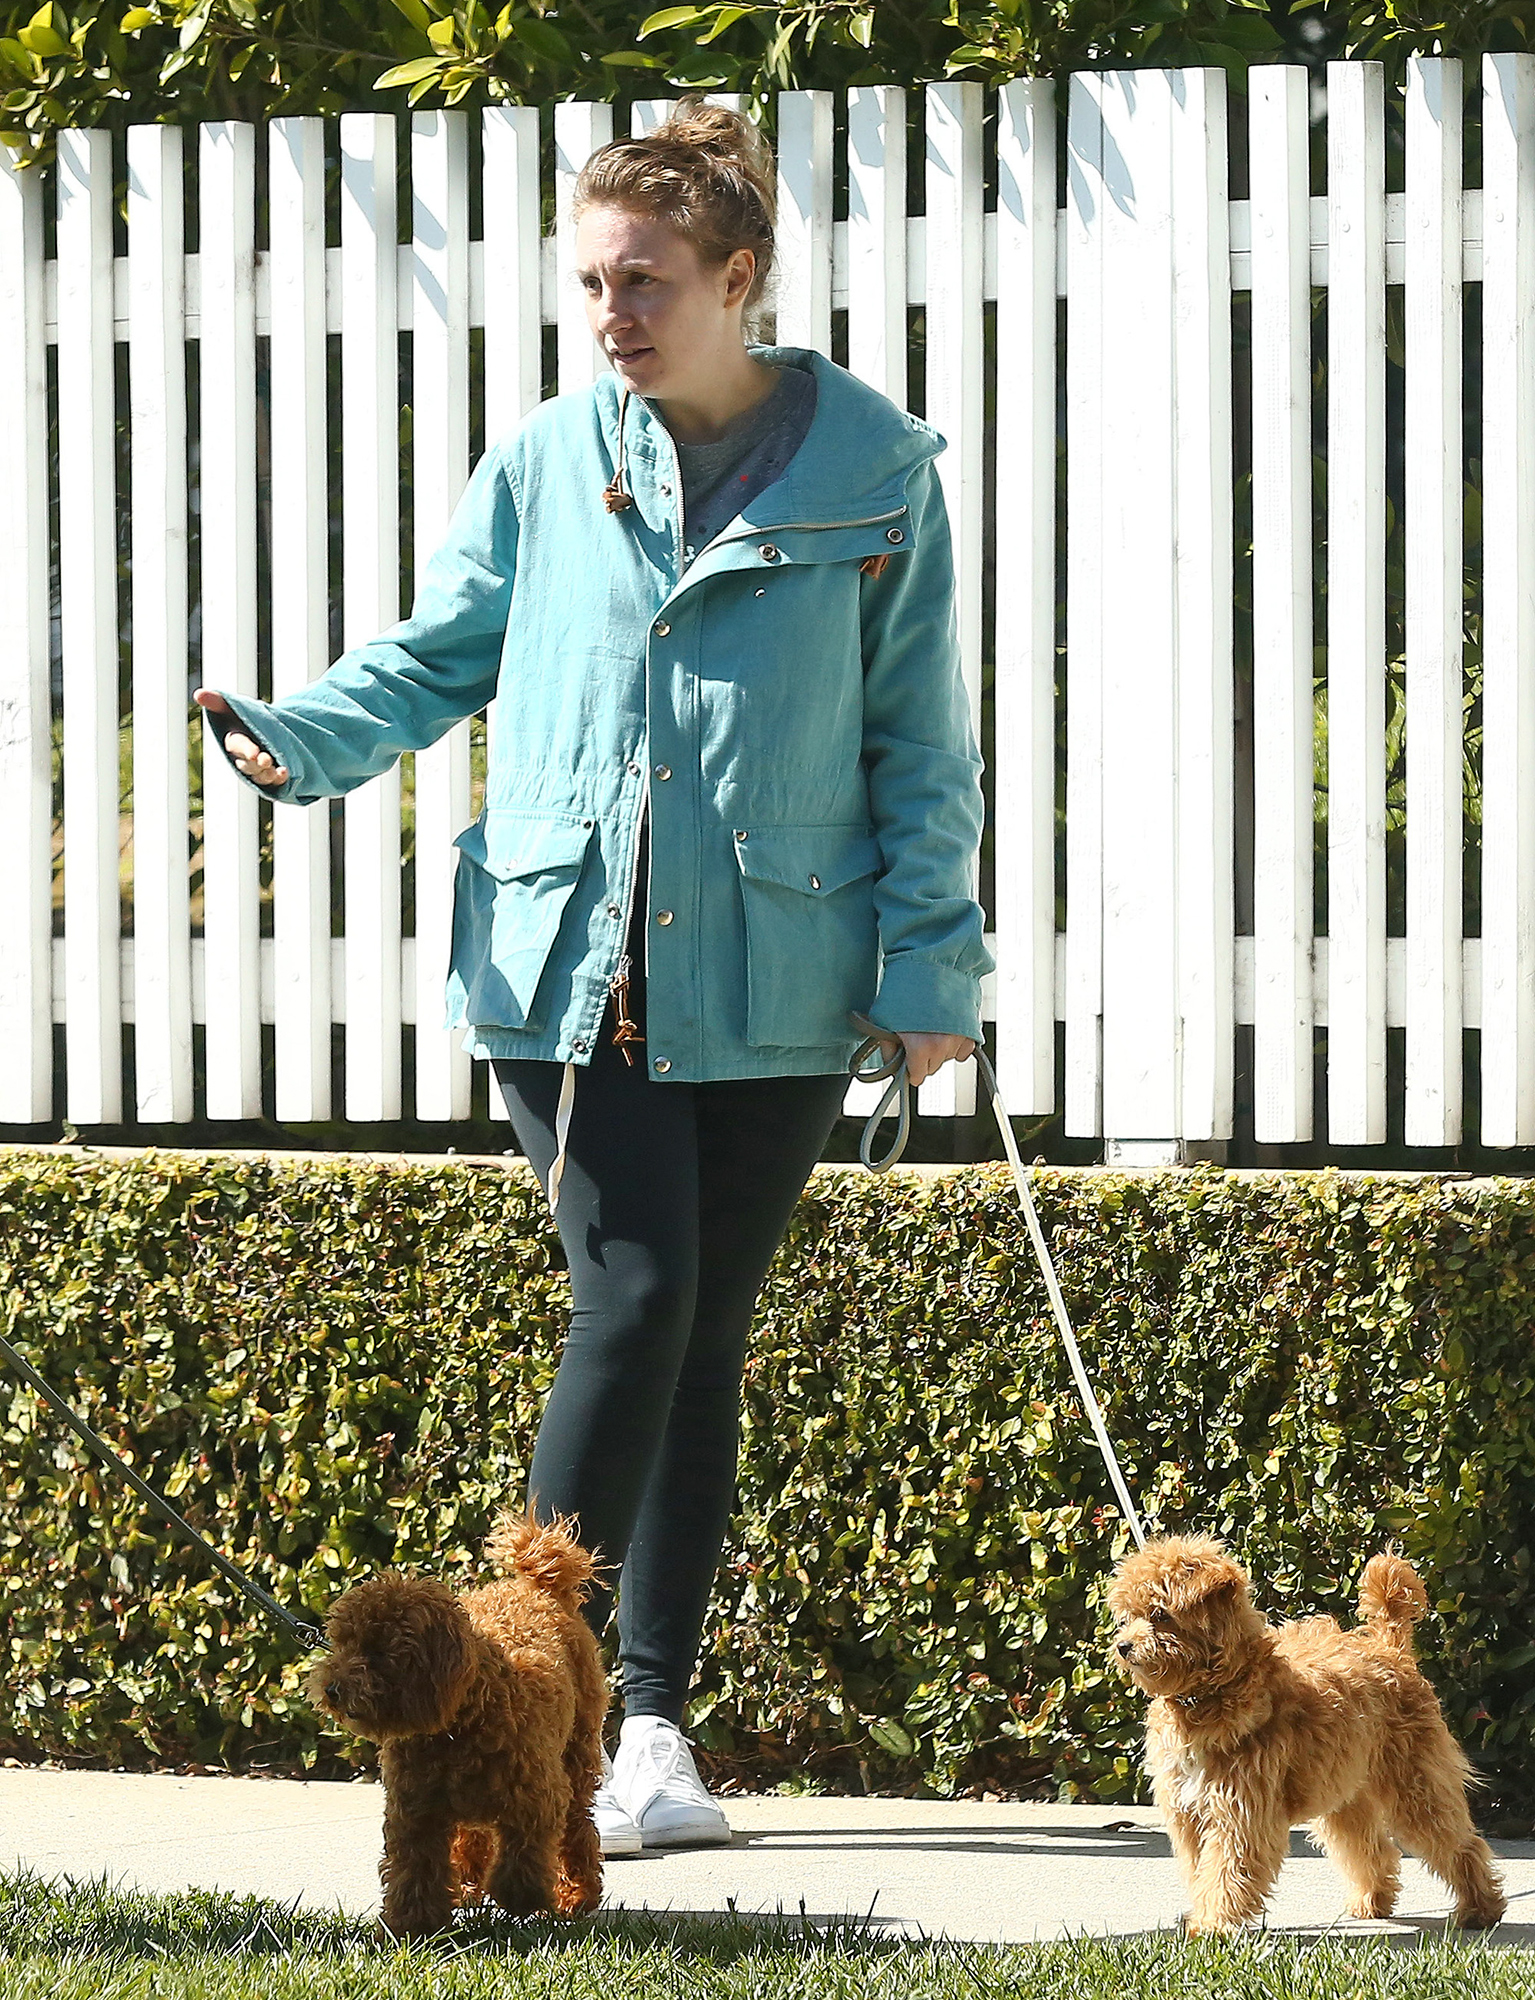 Exclusive... Lena Dunham & A Friend Take Their Dogs Out In LA